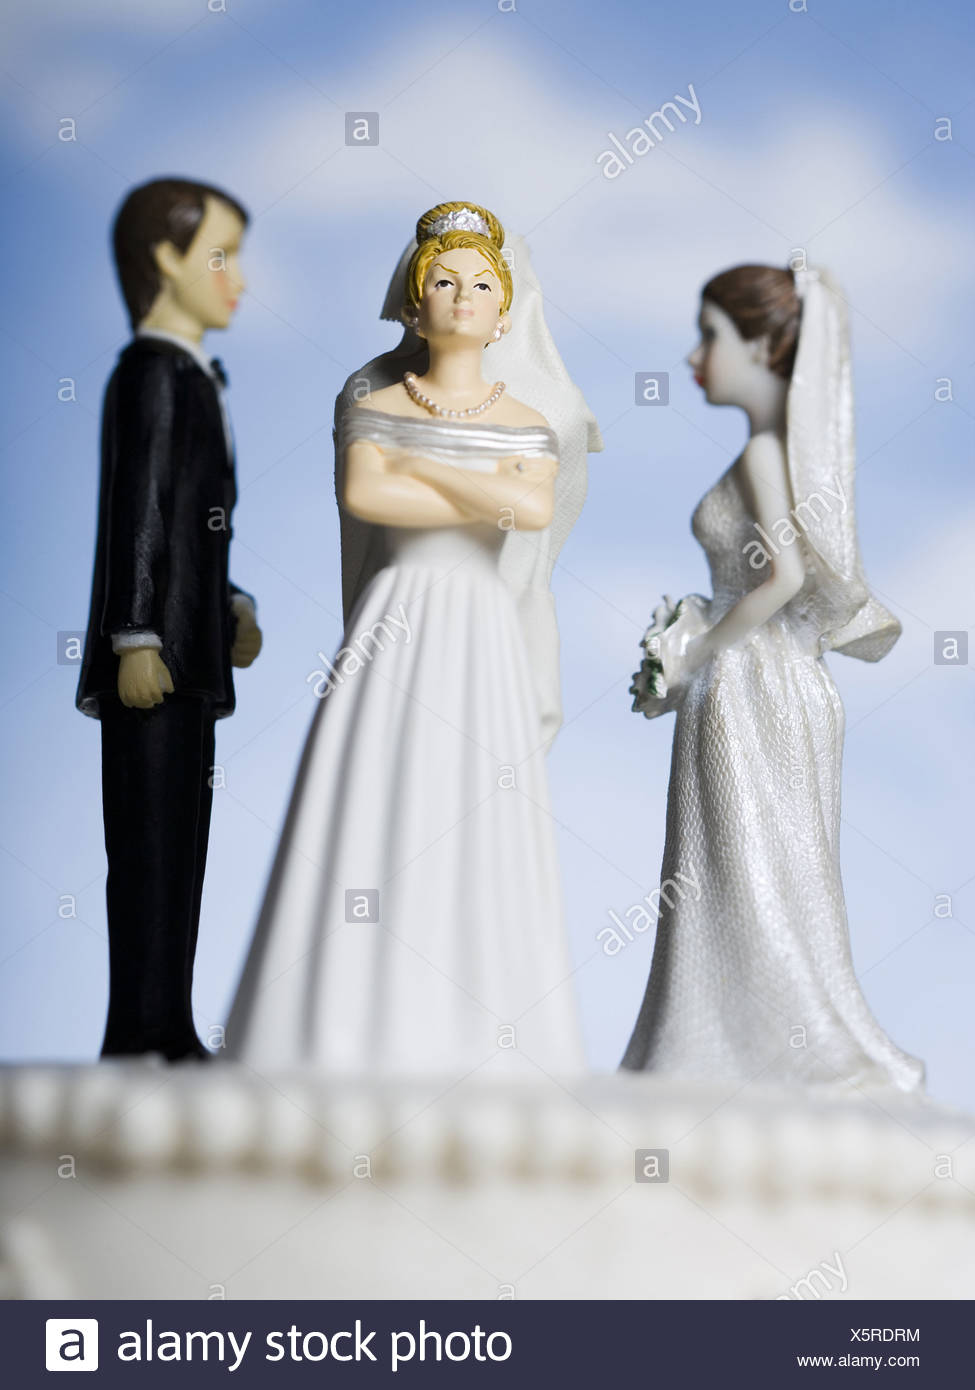 Wedding cake visual metaphor with figurine cake toppers - Stock Image